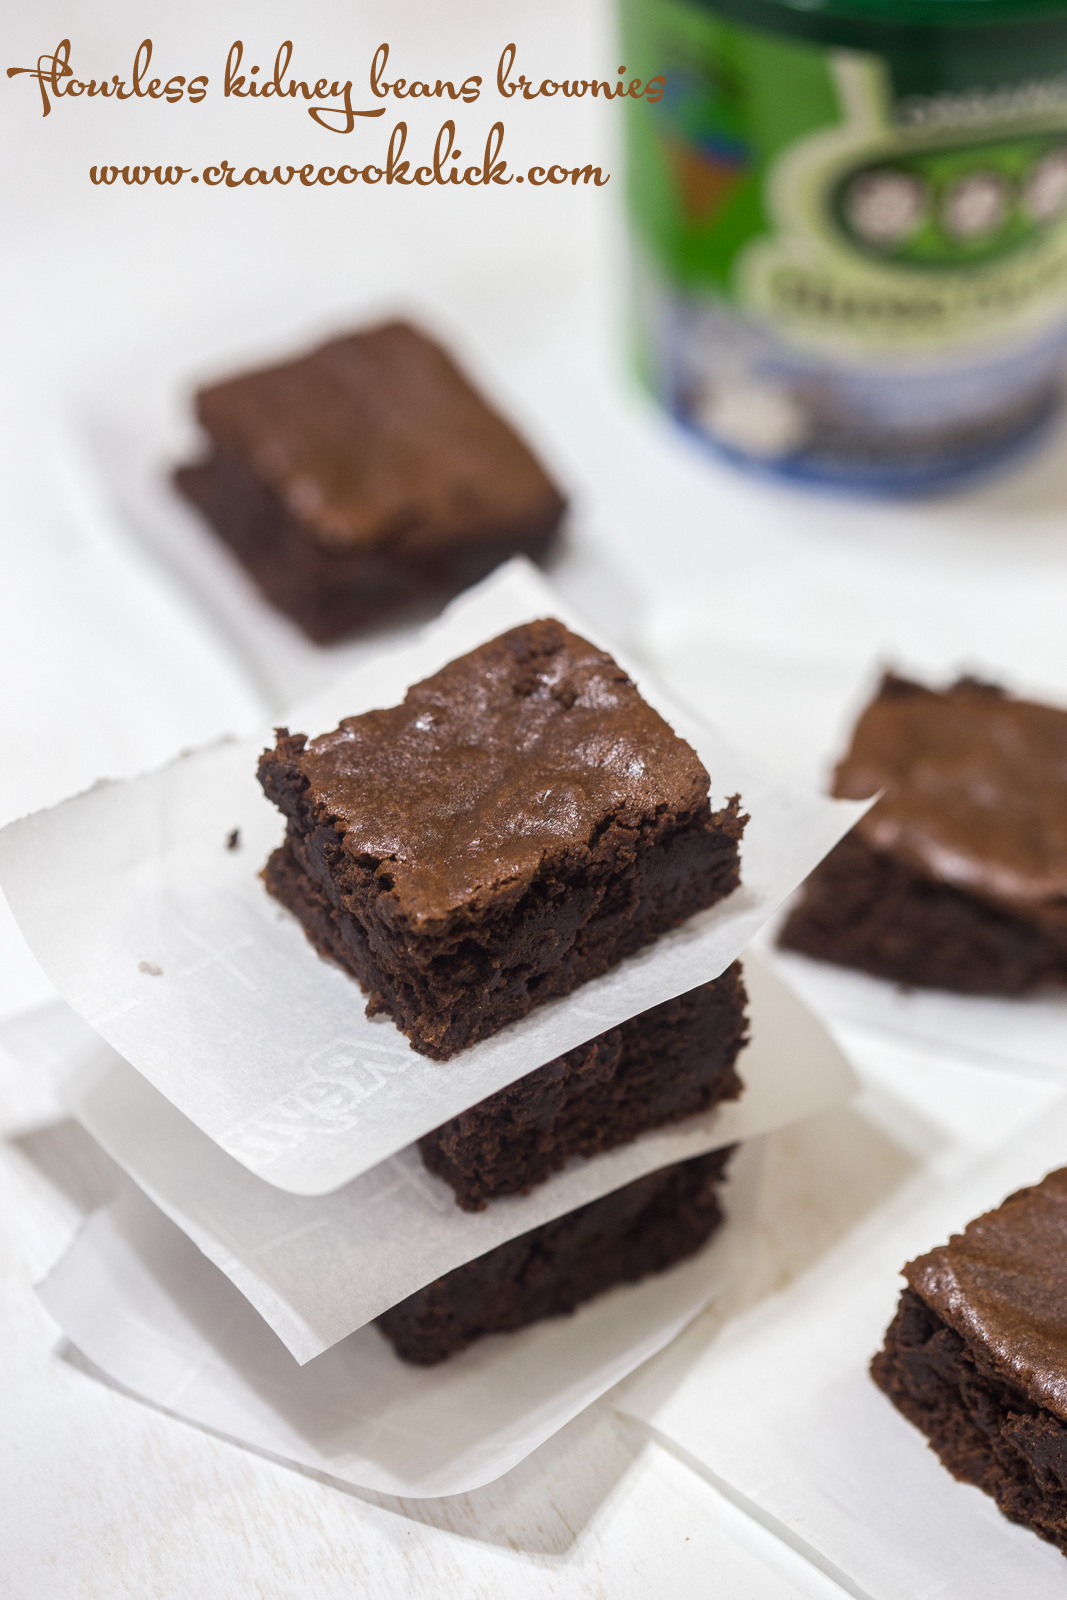 Healthy brownies, gluten free brownies, flourless brownies, tasty, kidney beans, food blog, easy recipes, food photography, healthy recipes